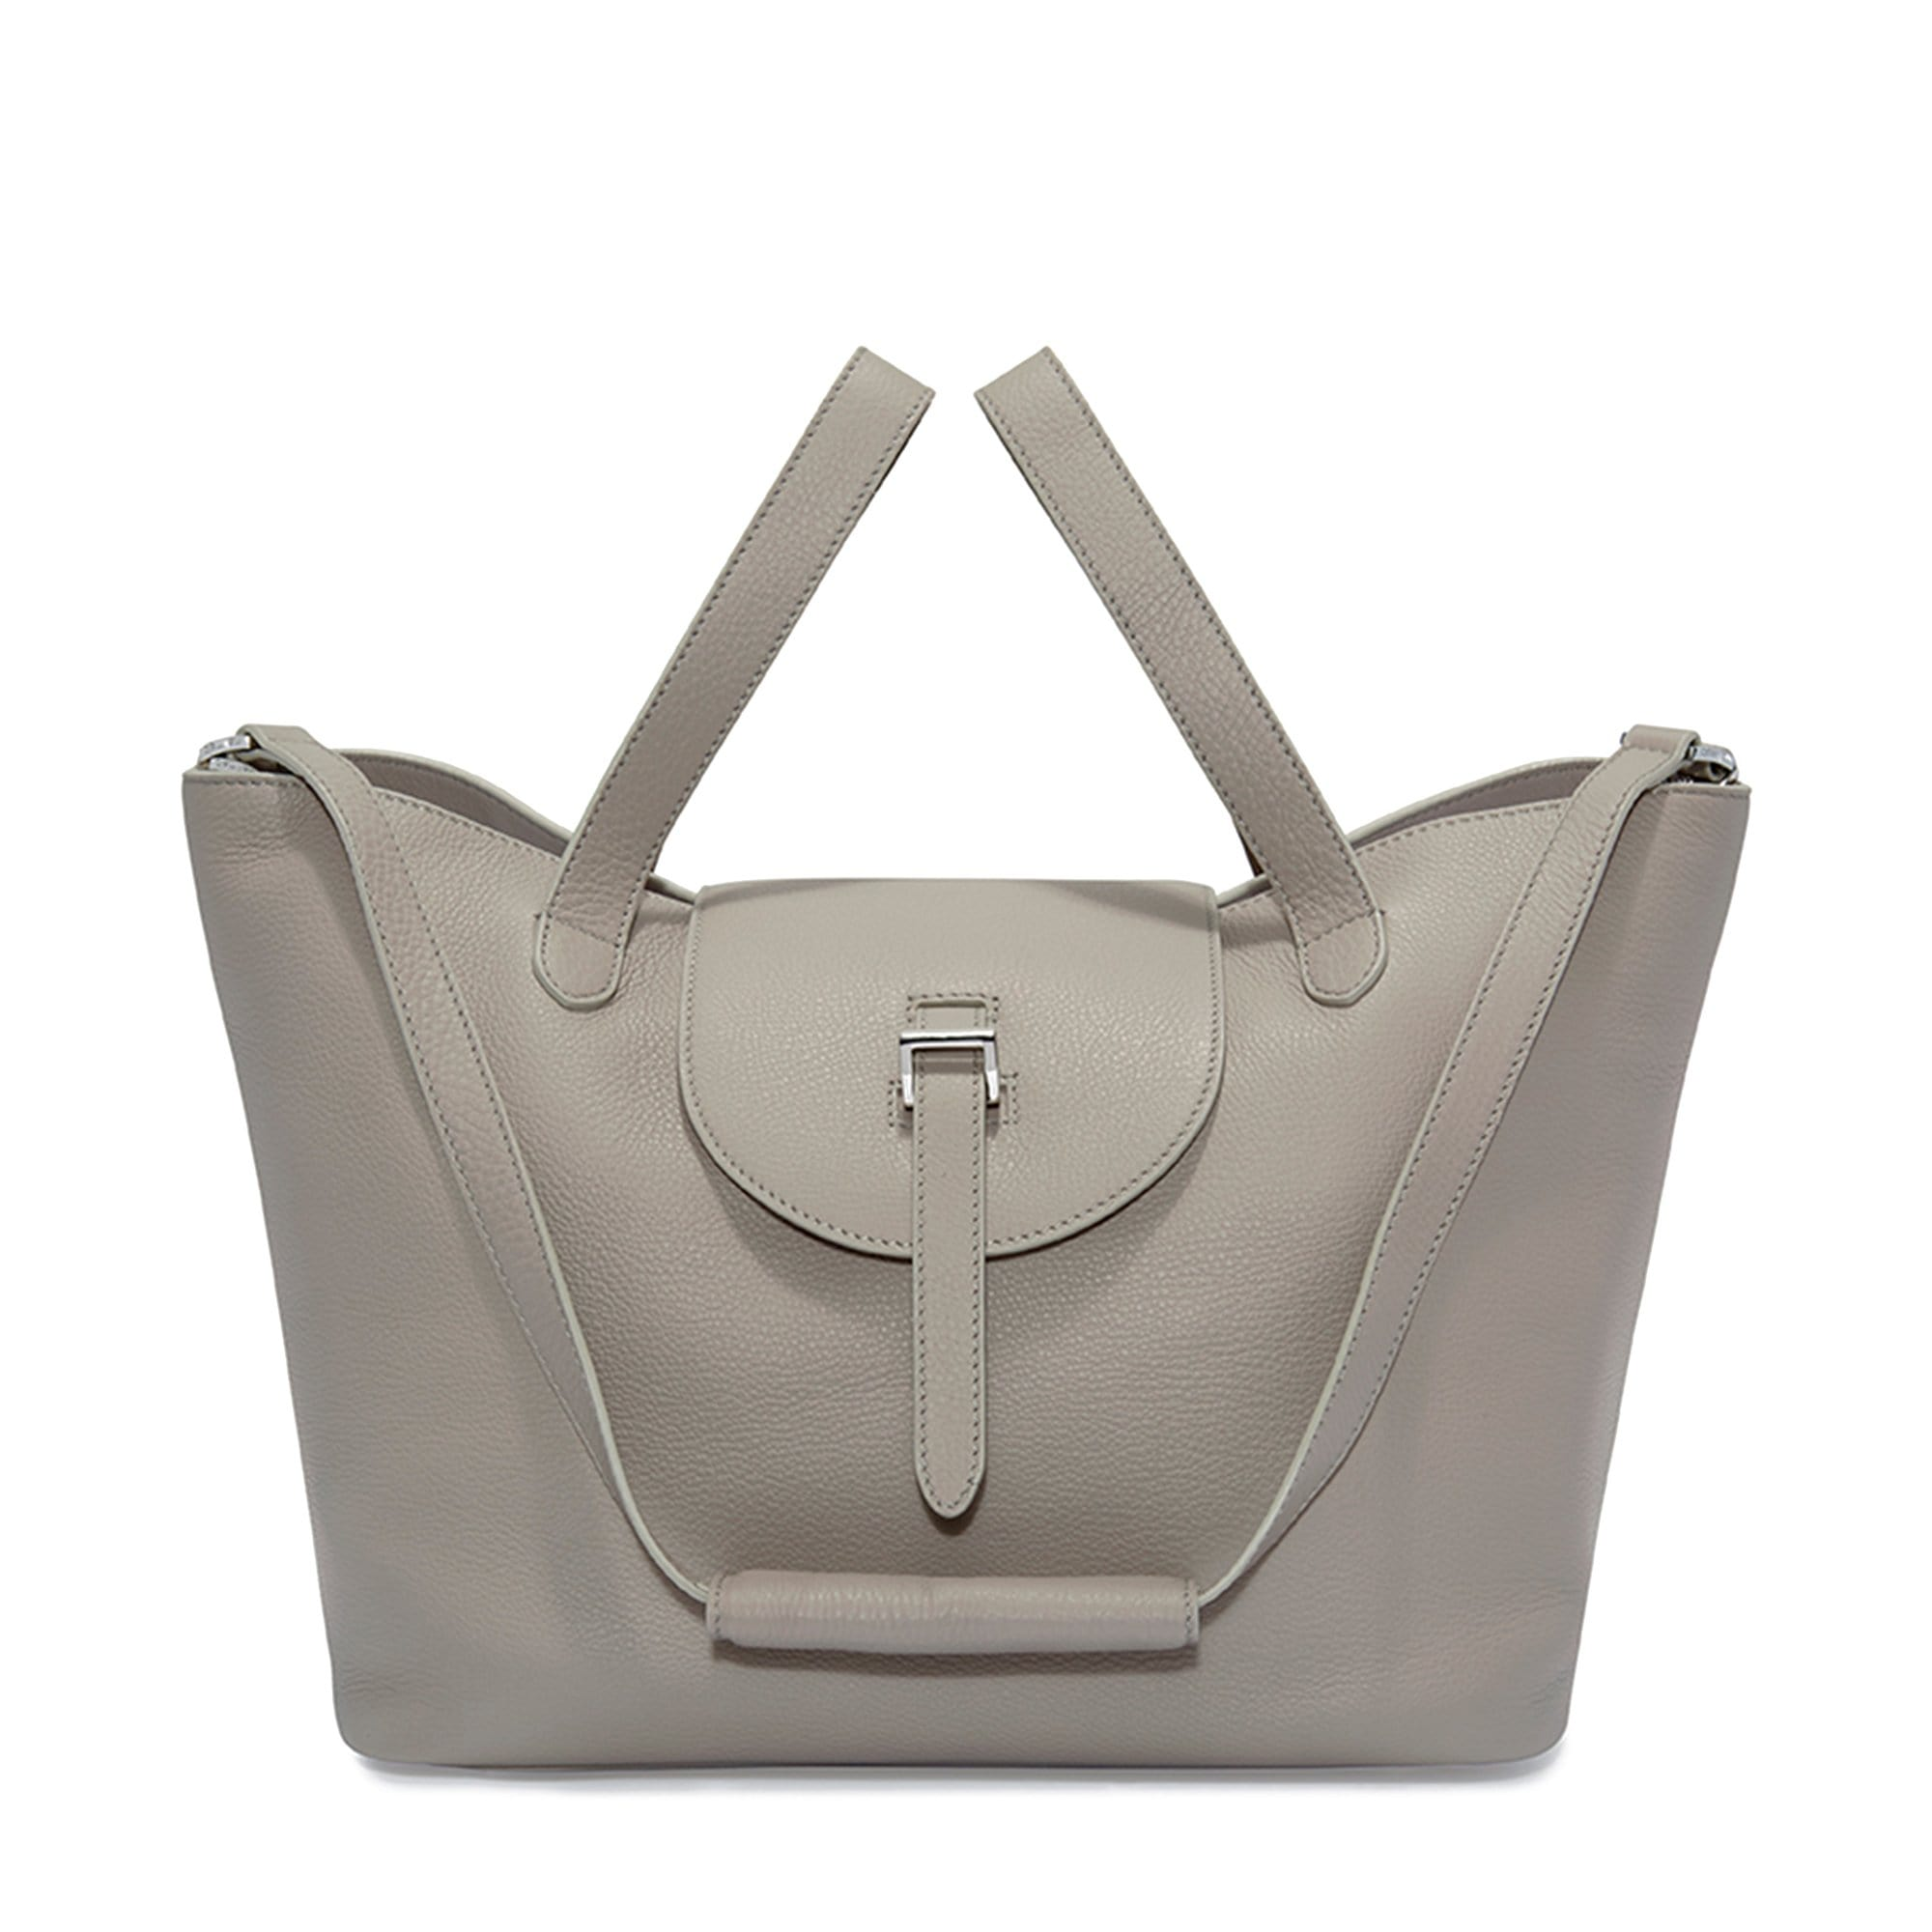 Thela Taupe Grey Leather Tote Bag for Women